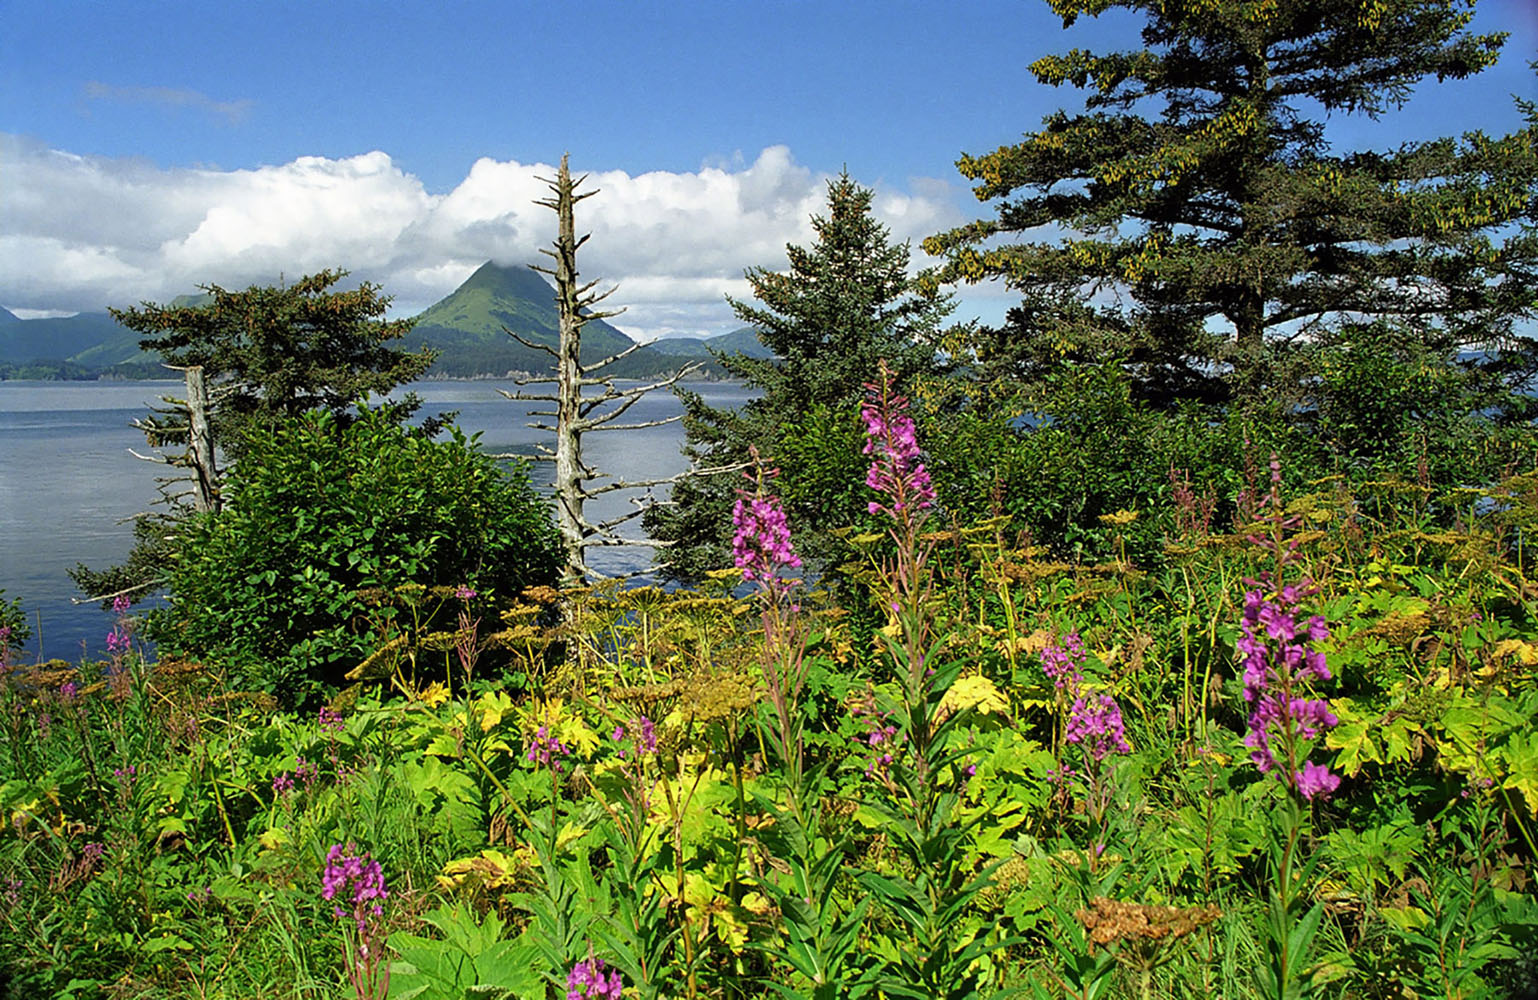 Mountains in the distance in Ambercrombie State Park in Alaska